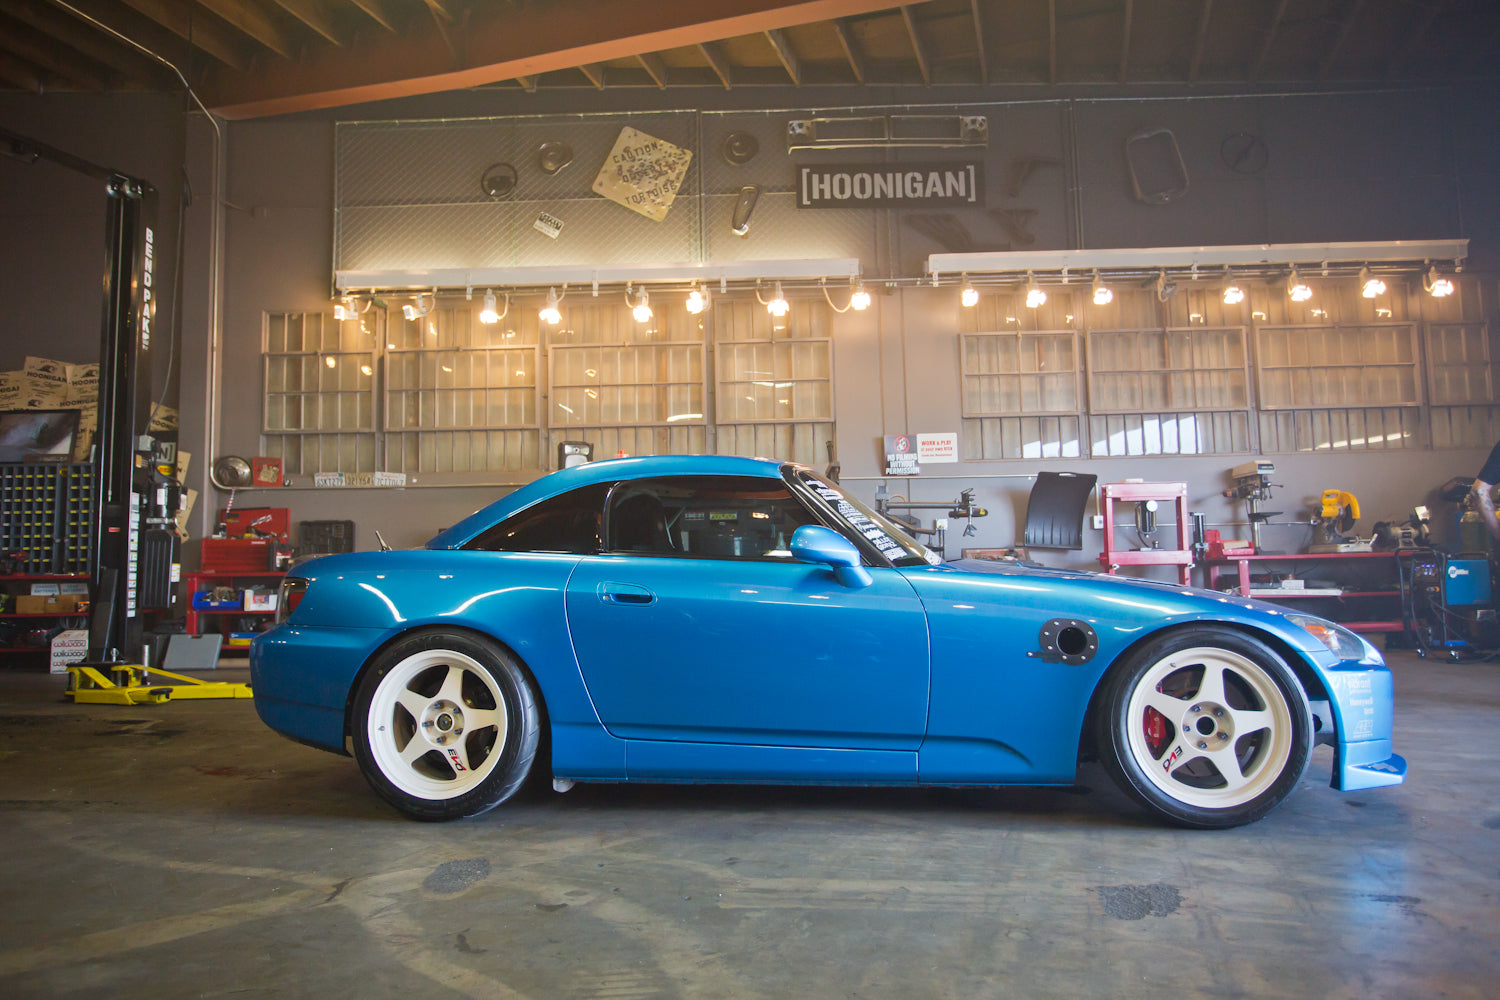 Twin Turbo'd and V6 Swapped S2000: Not your average S2K!! - Hoonigan